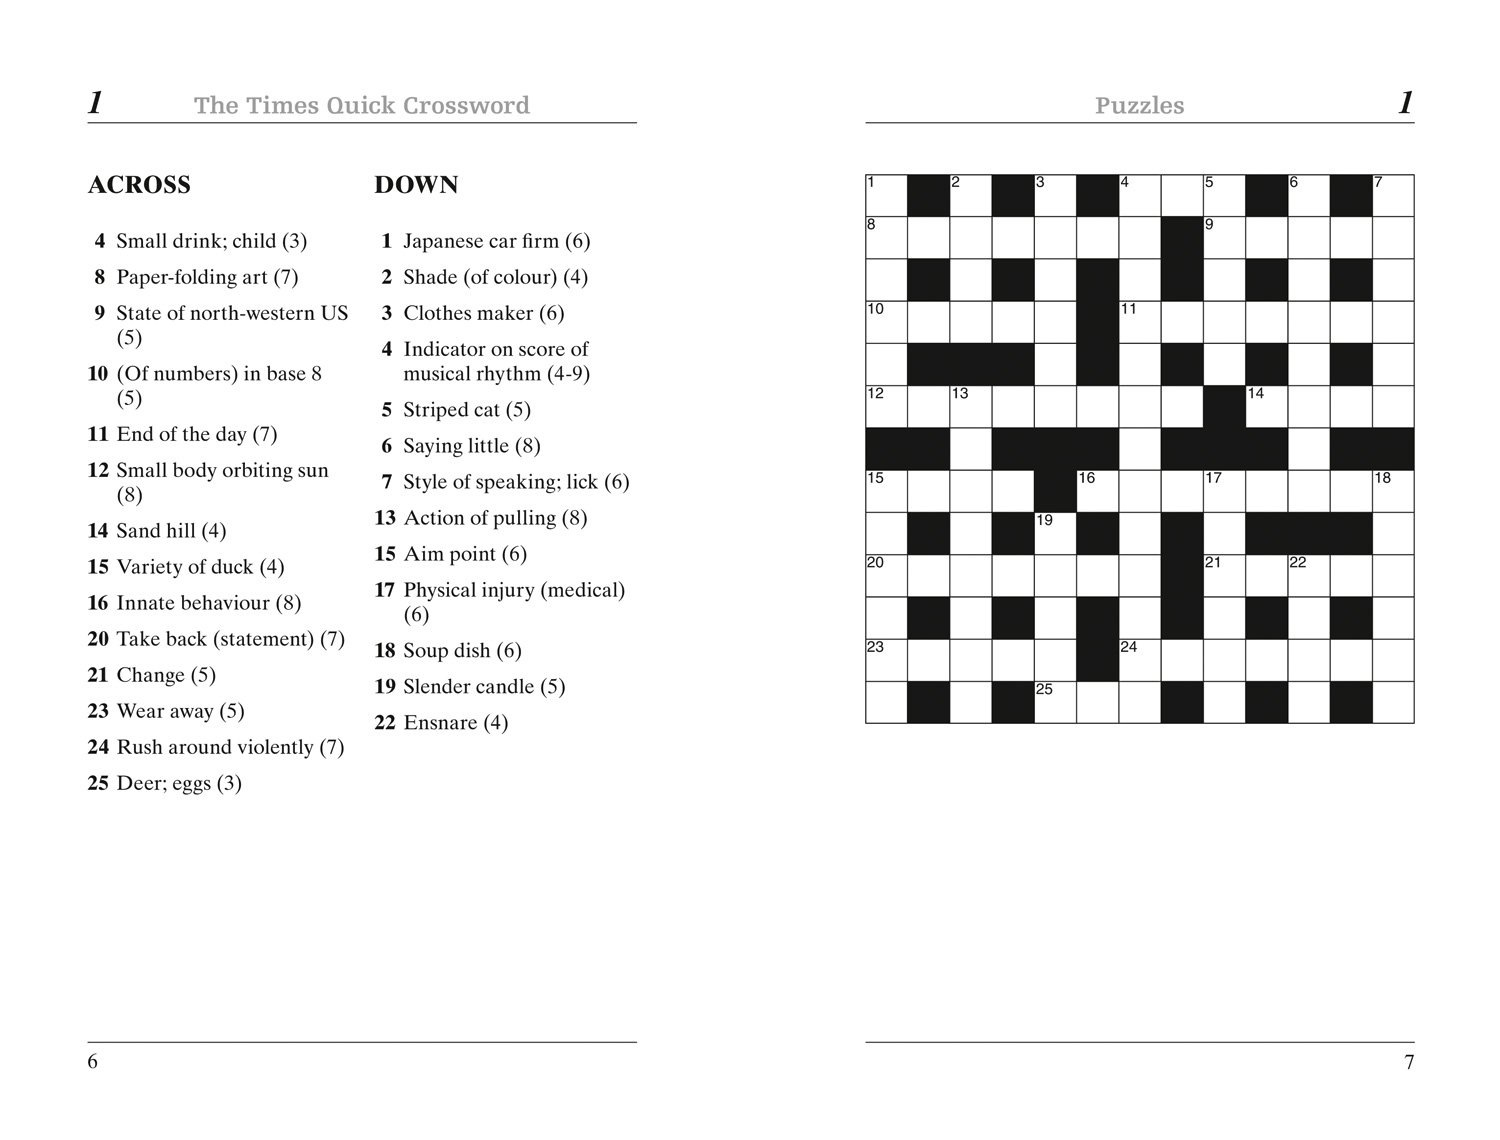 Golf Term Crossword Clue Elegant The Times Quick Crossword Book 19 - Printable Quick Crossword